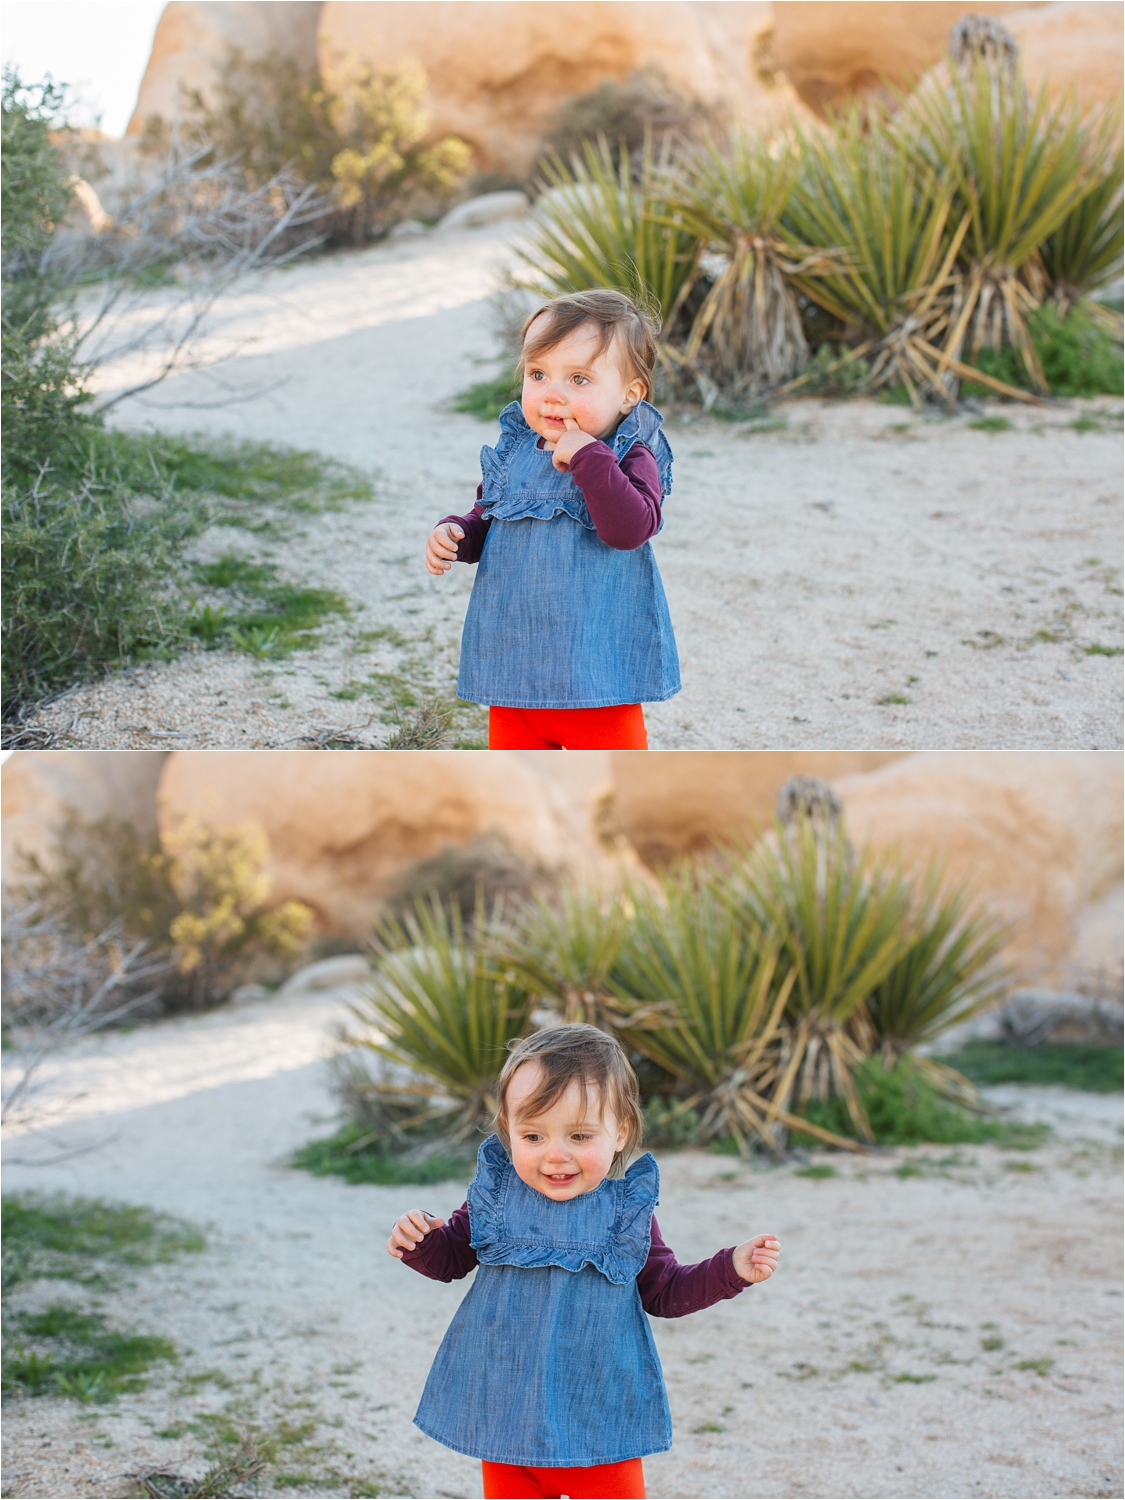 Children Photographer in Southern California - https://brittneyhannonphotography.com